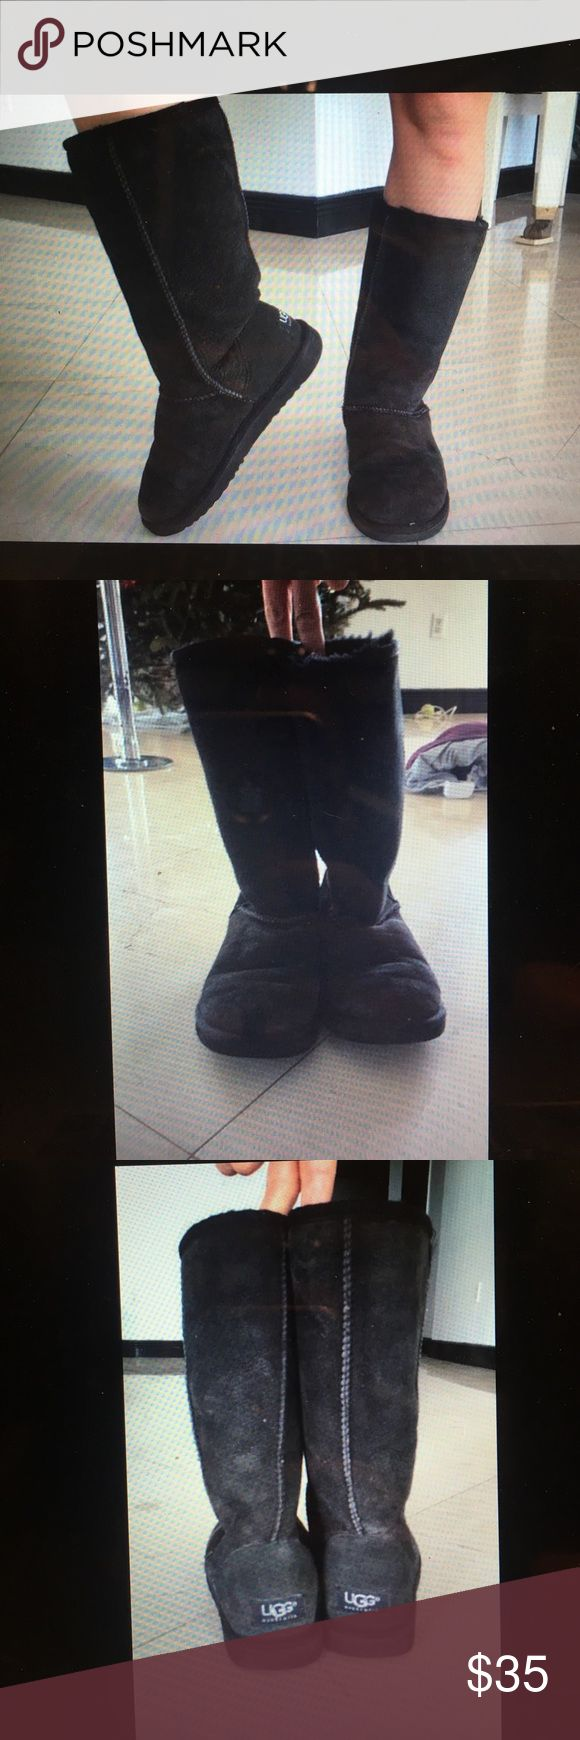 Ugg Boots black shorti size 5/6 only $35 All black tall original shorti ugg boots. For size 5 or 6. Little faded but nothing crazy. UGG Shoes Winter & Rain Boots